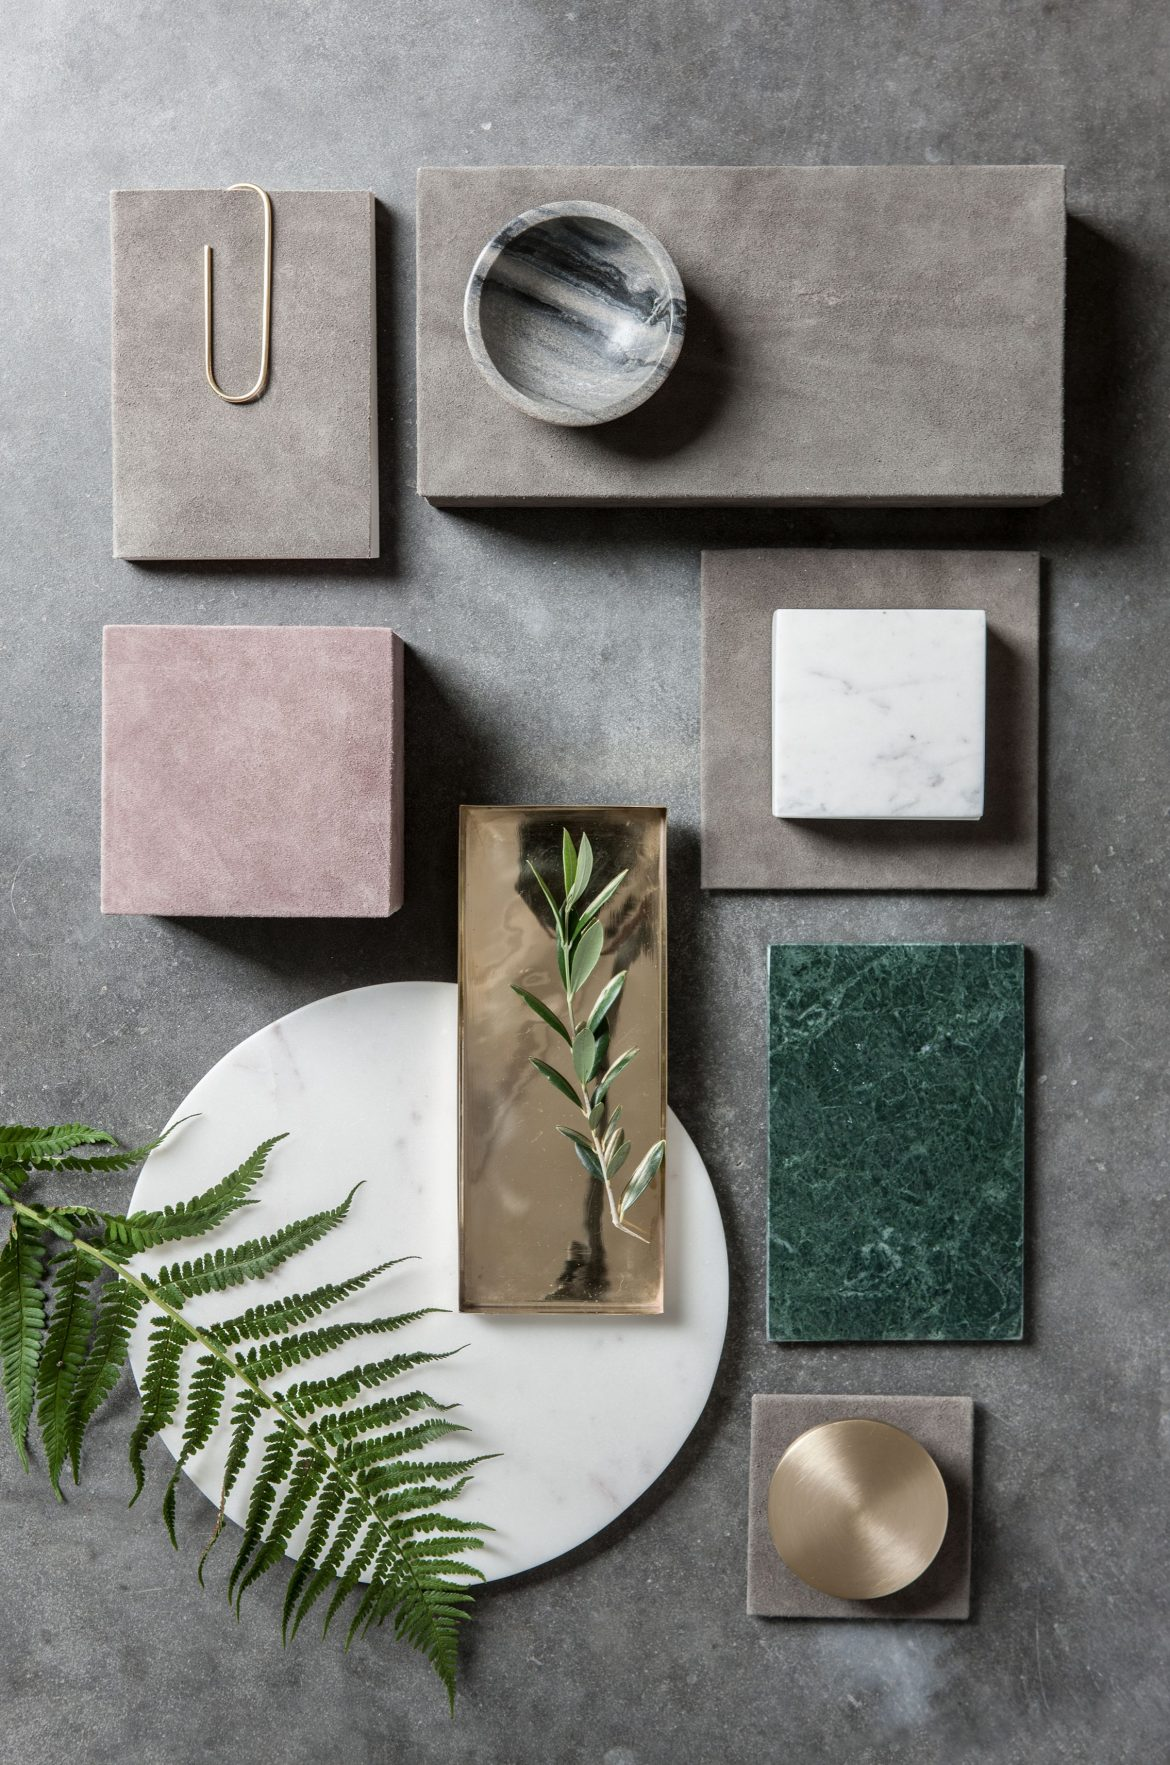 Materials And Finishes: Discover Here The Trends For 2021  materials and finishes Materials And Finishes: Discover Here The Trends For 2021  materials and finishes discover here the trends for 2021 2